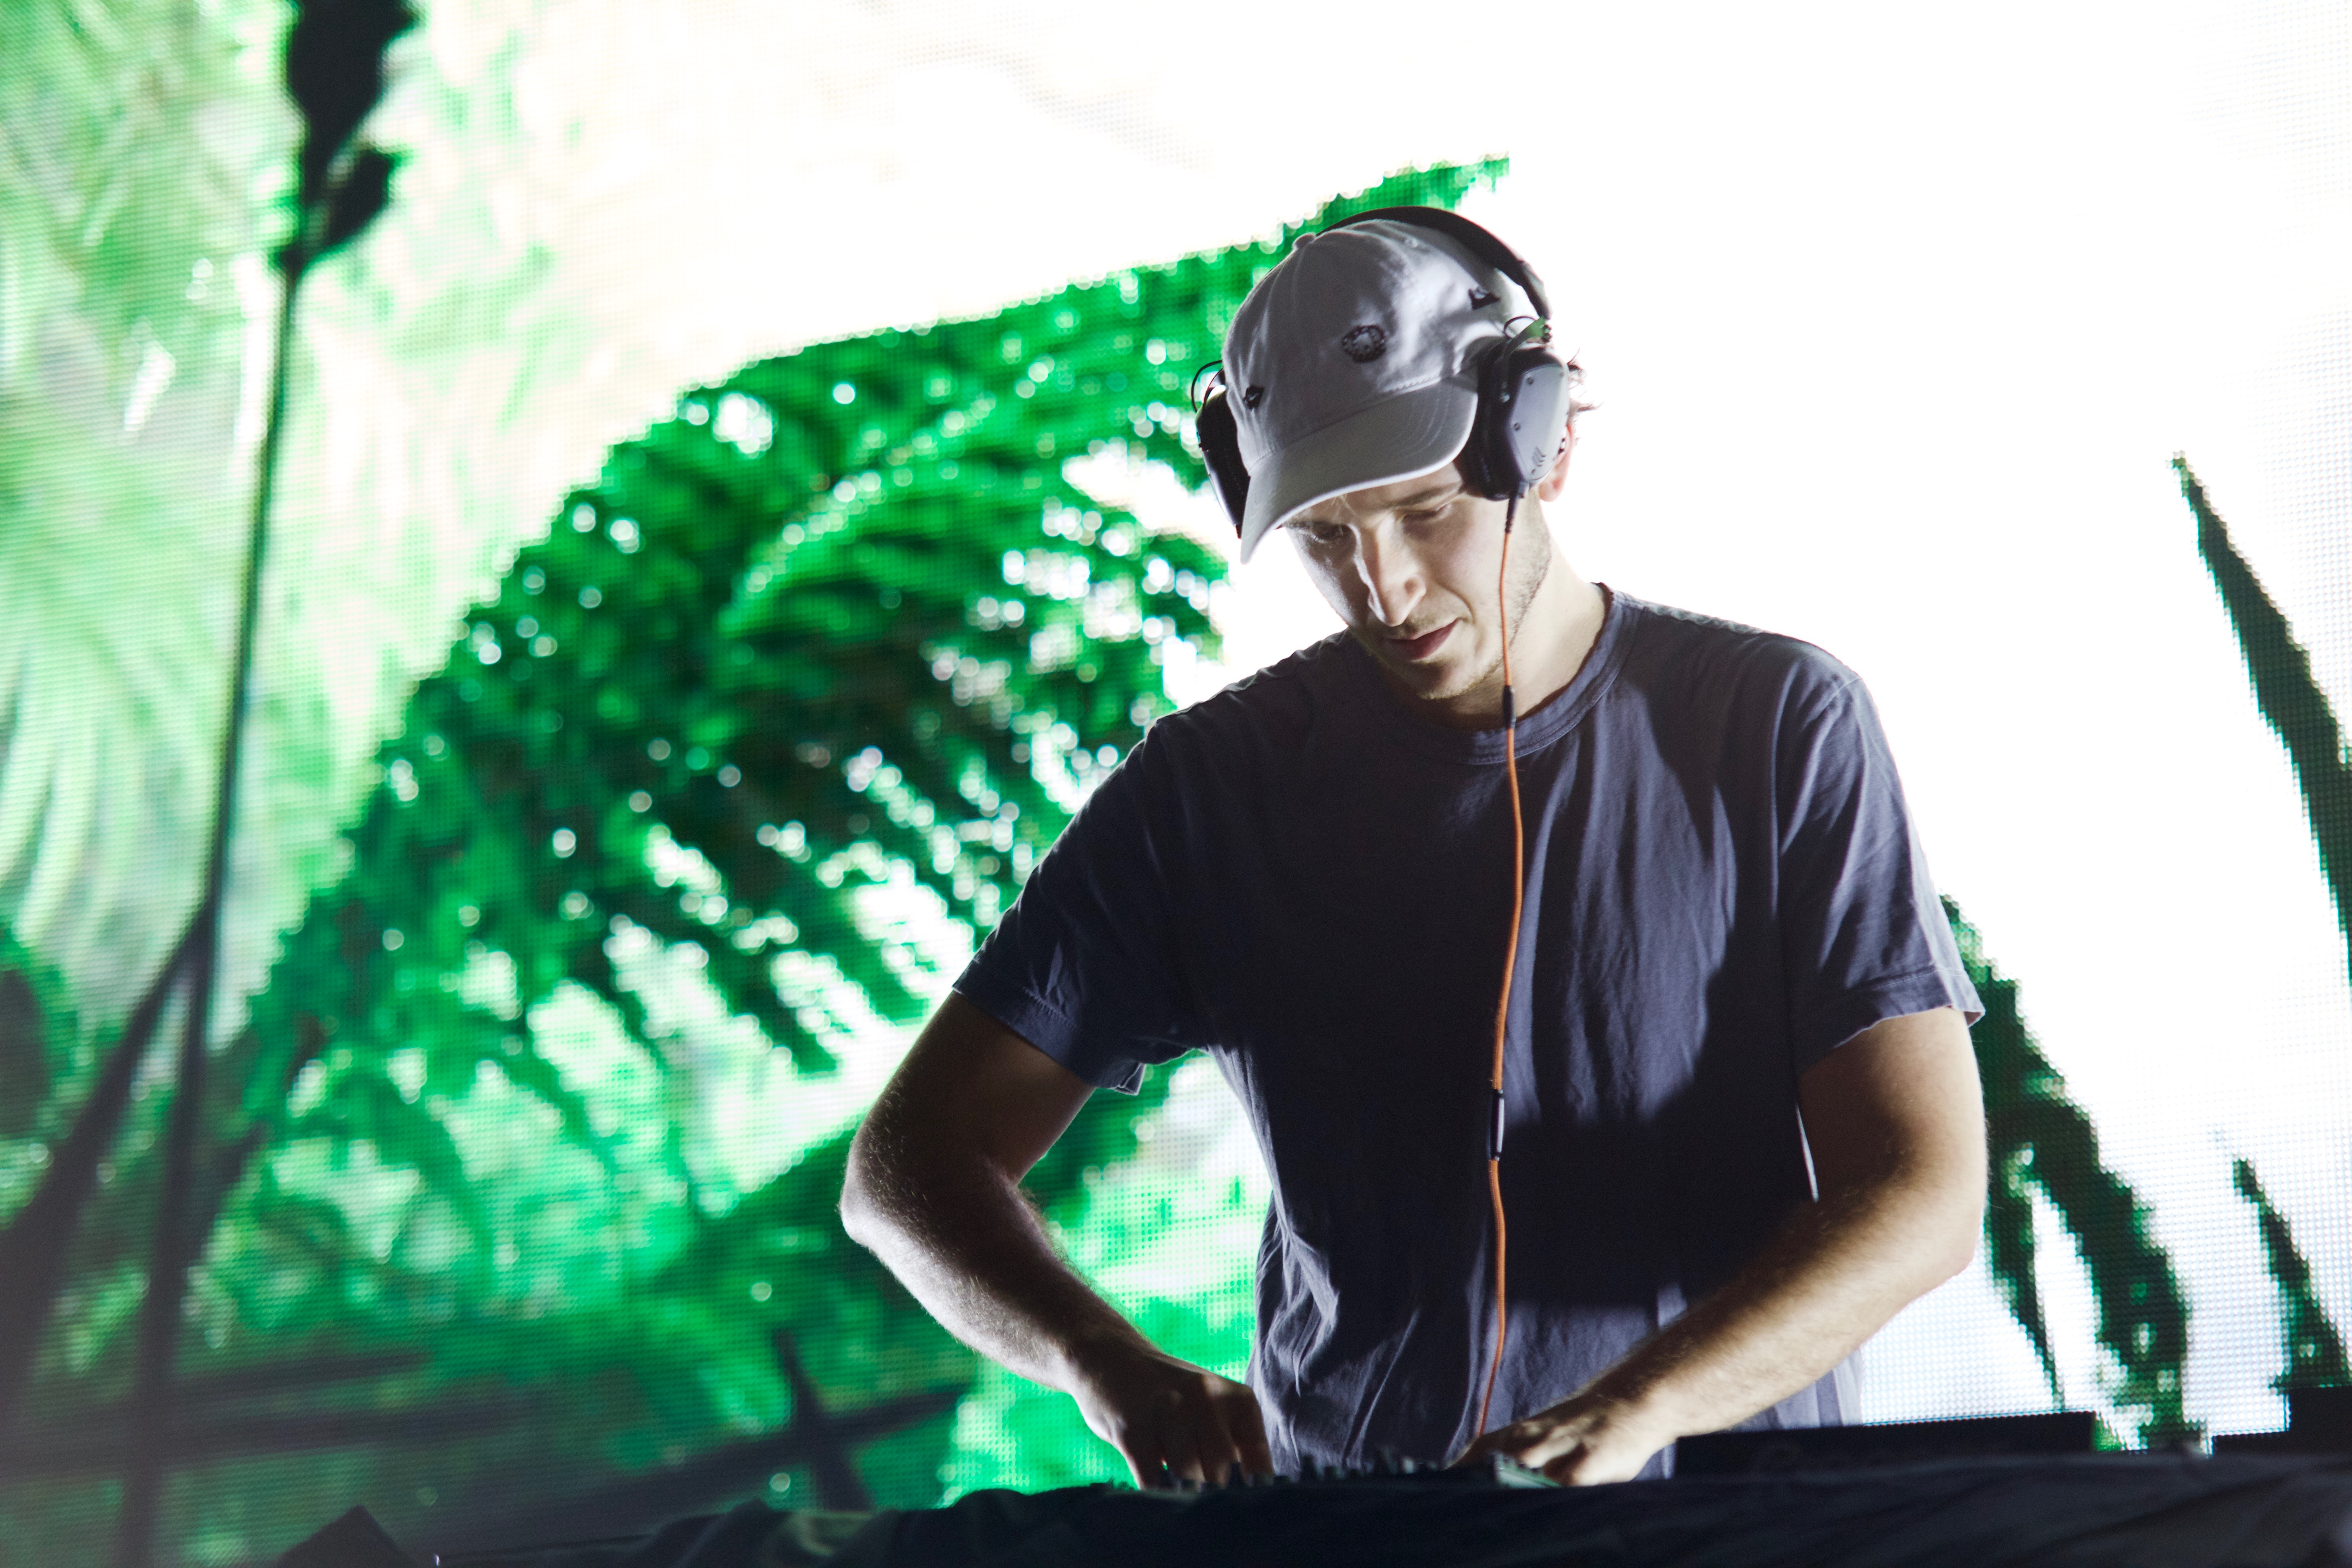 RL Grime, 25, is a Los Angeles-based producer known mainly for his rhythmic electronic and hip-hop remixes. ARACELY JIMENEZ/THE STATESMAN